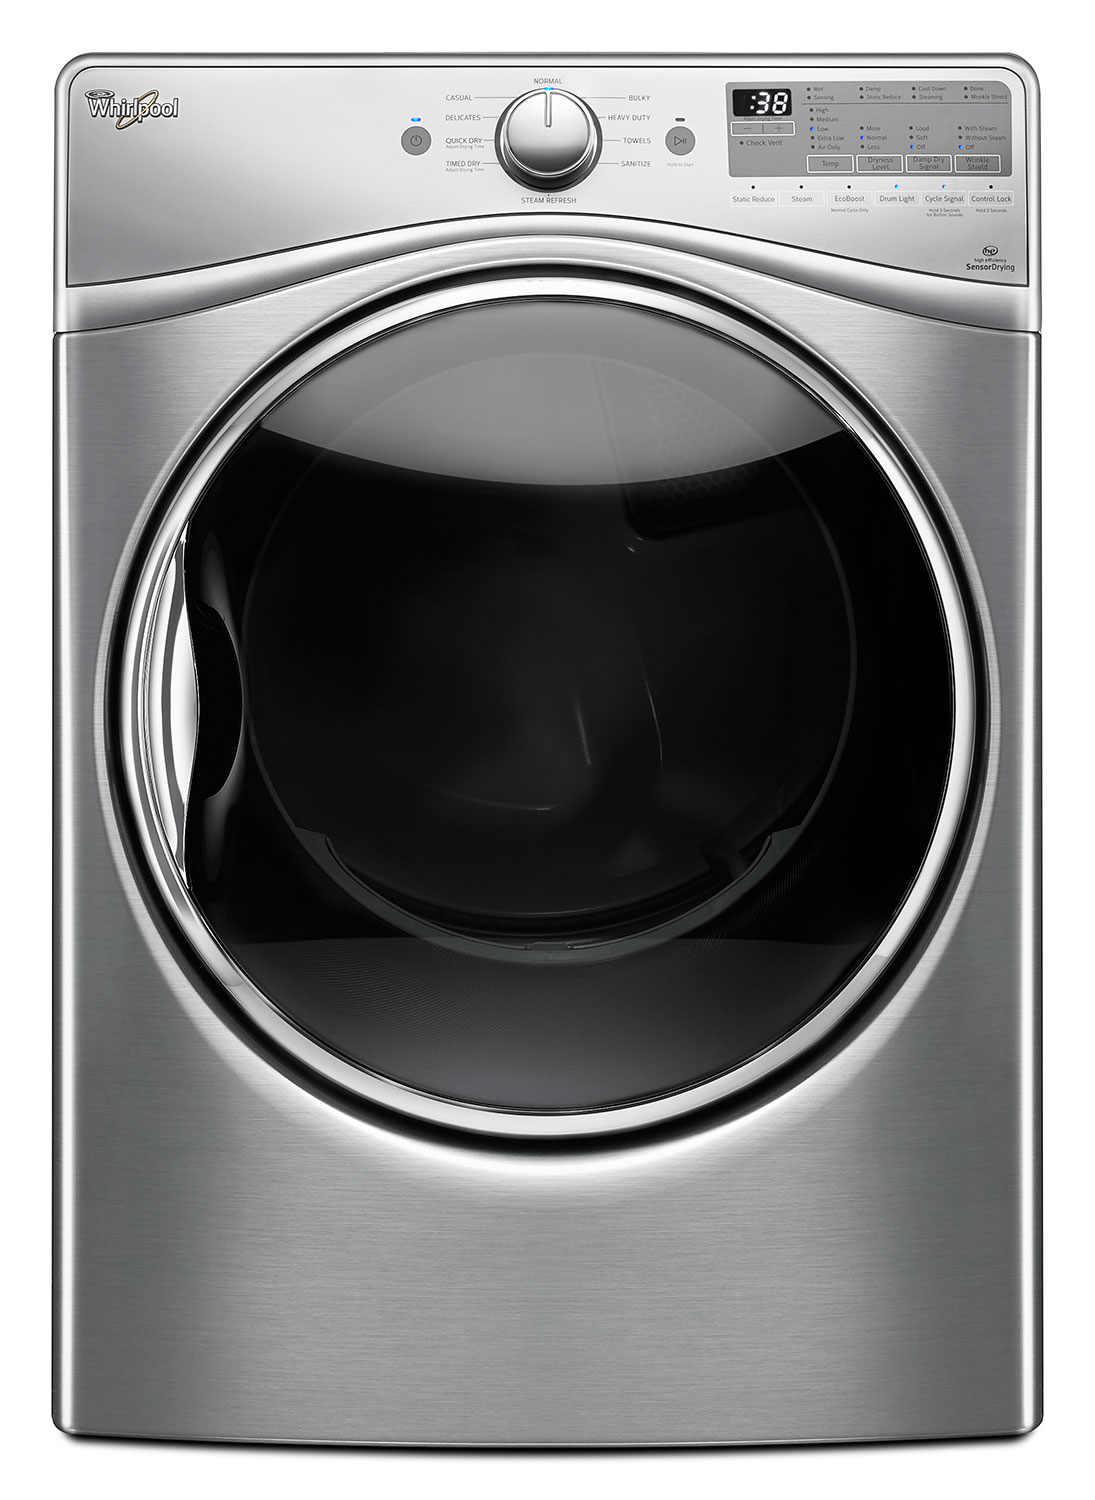 Washers and Dryers - Whirlpool Diamond Steel Dryer (8.5 Cu. Ft.) - YWED92HEFU